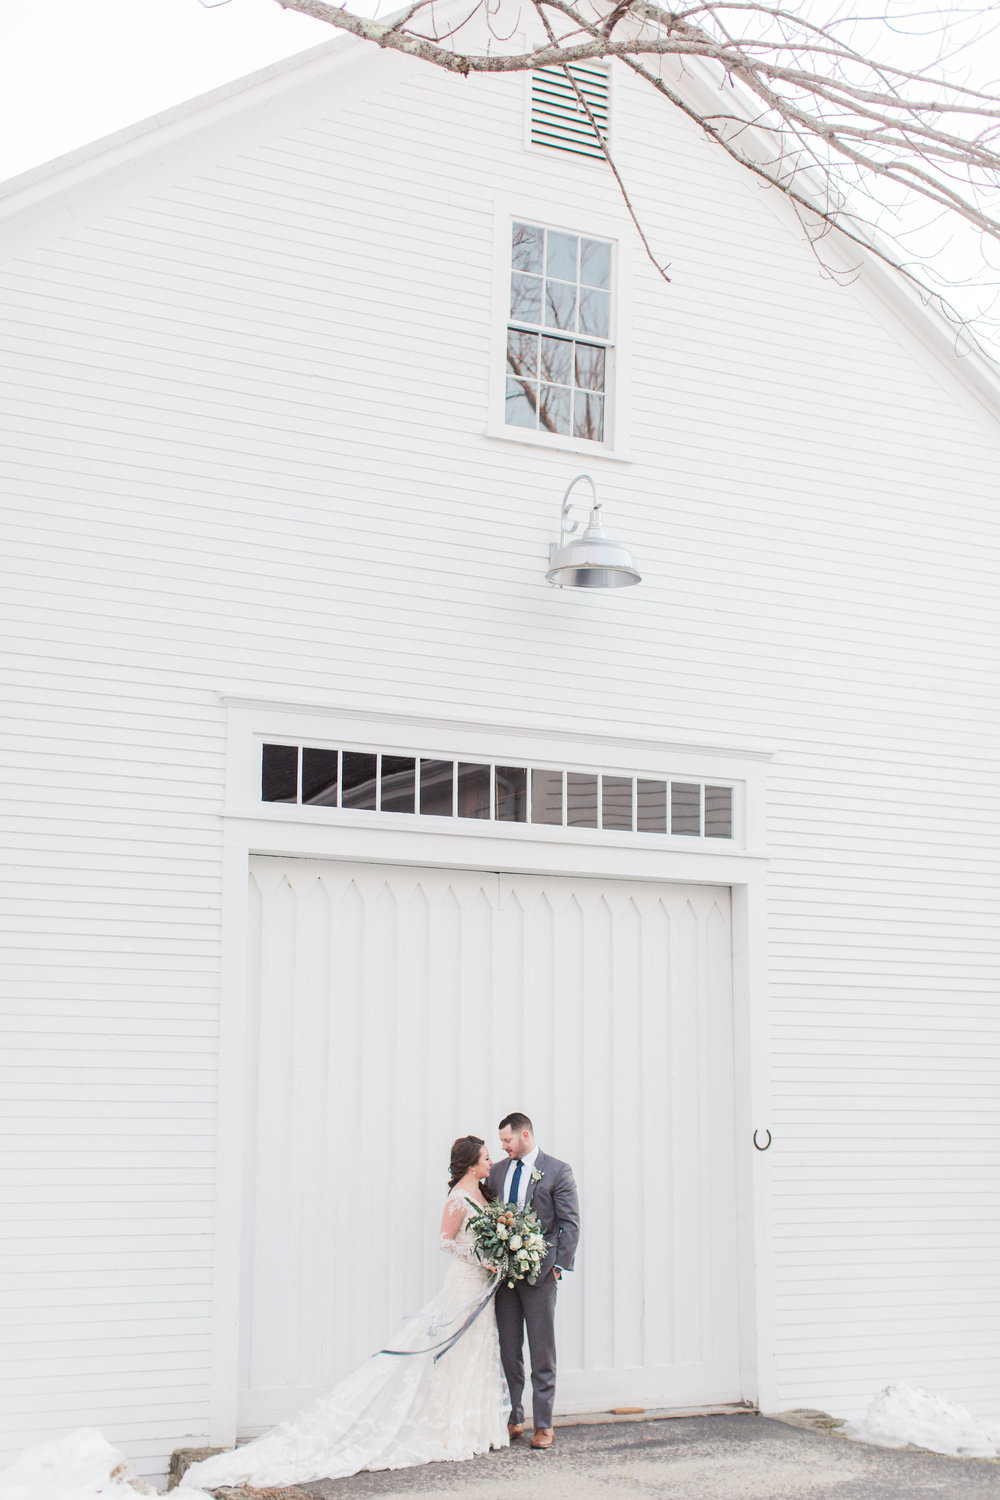 Cunningham_Farm_Winter_Styled_Wedding_Shoot_Meredith_Jane_Photography-241.jpg